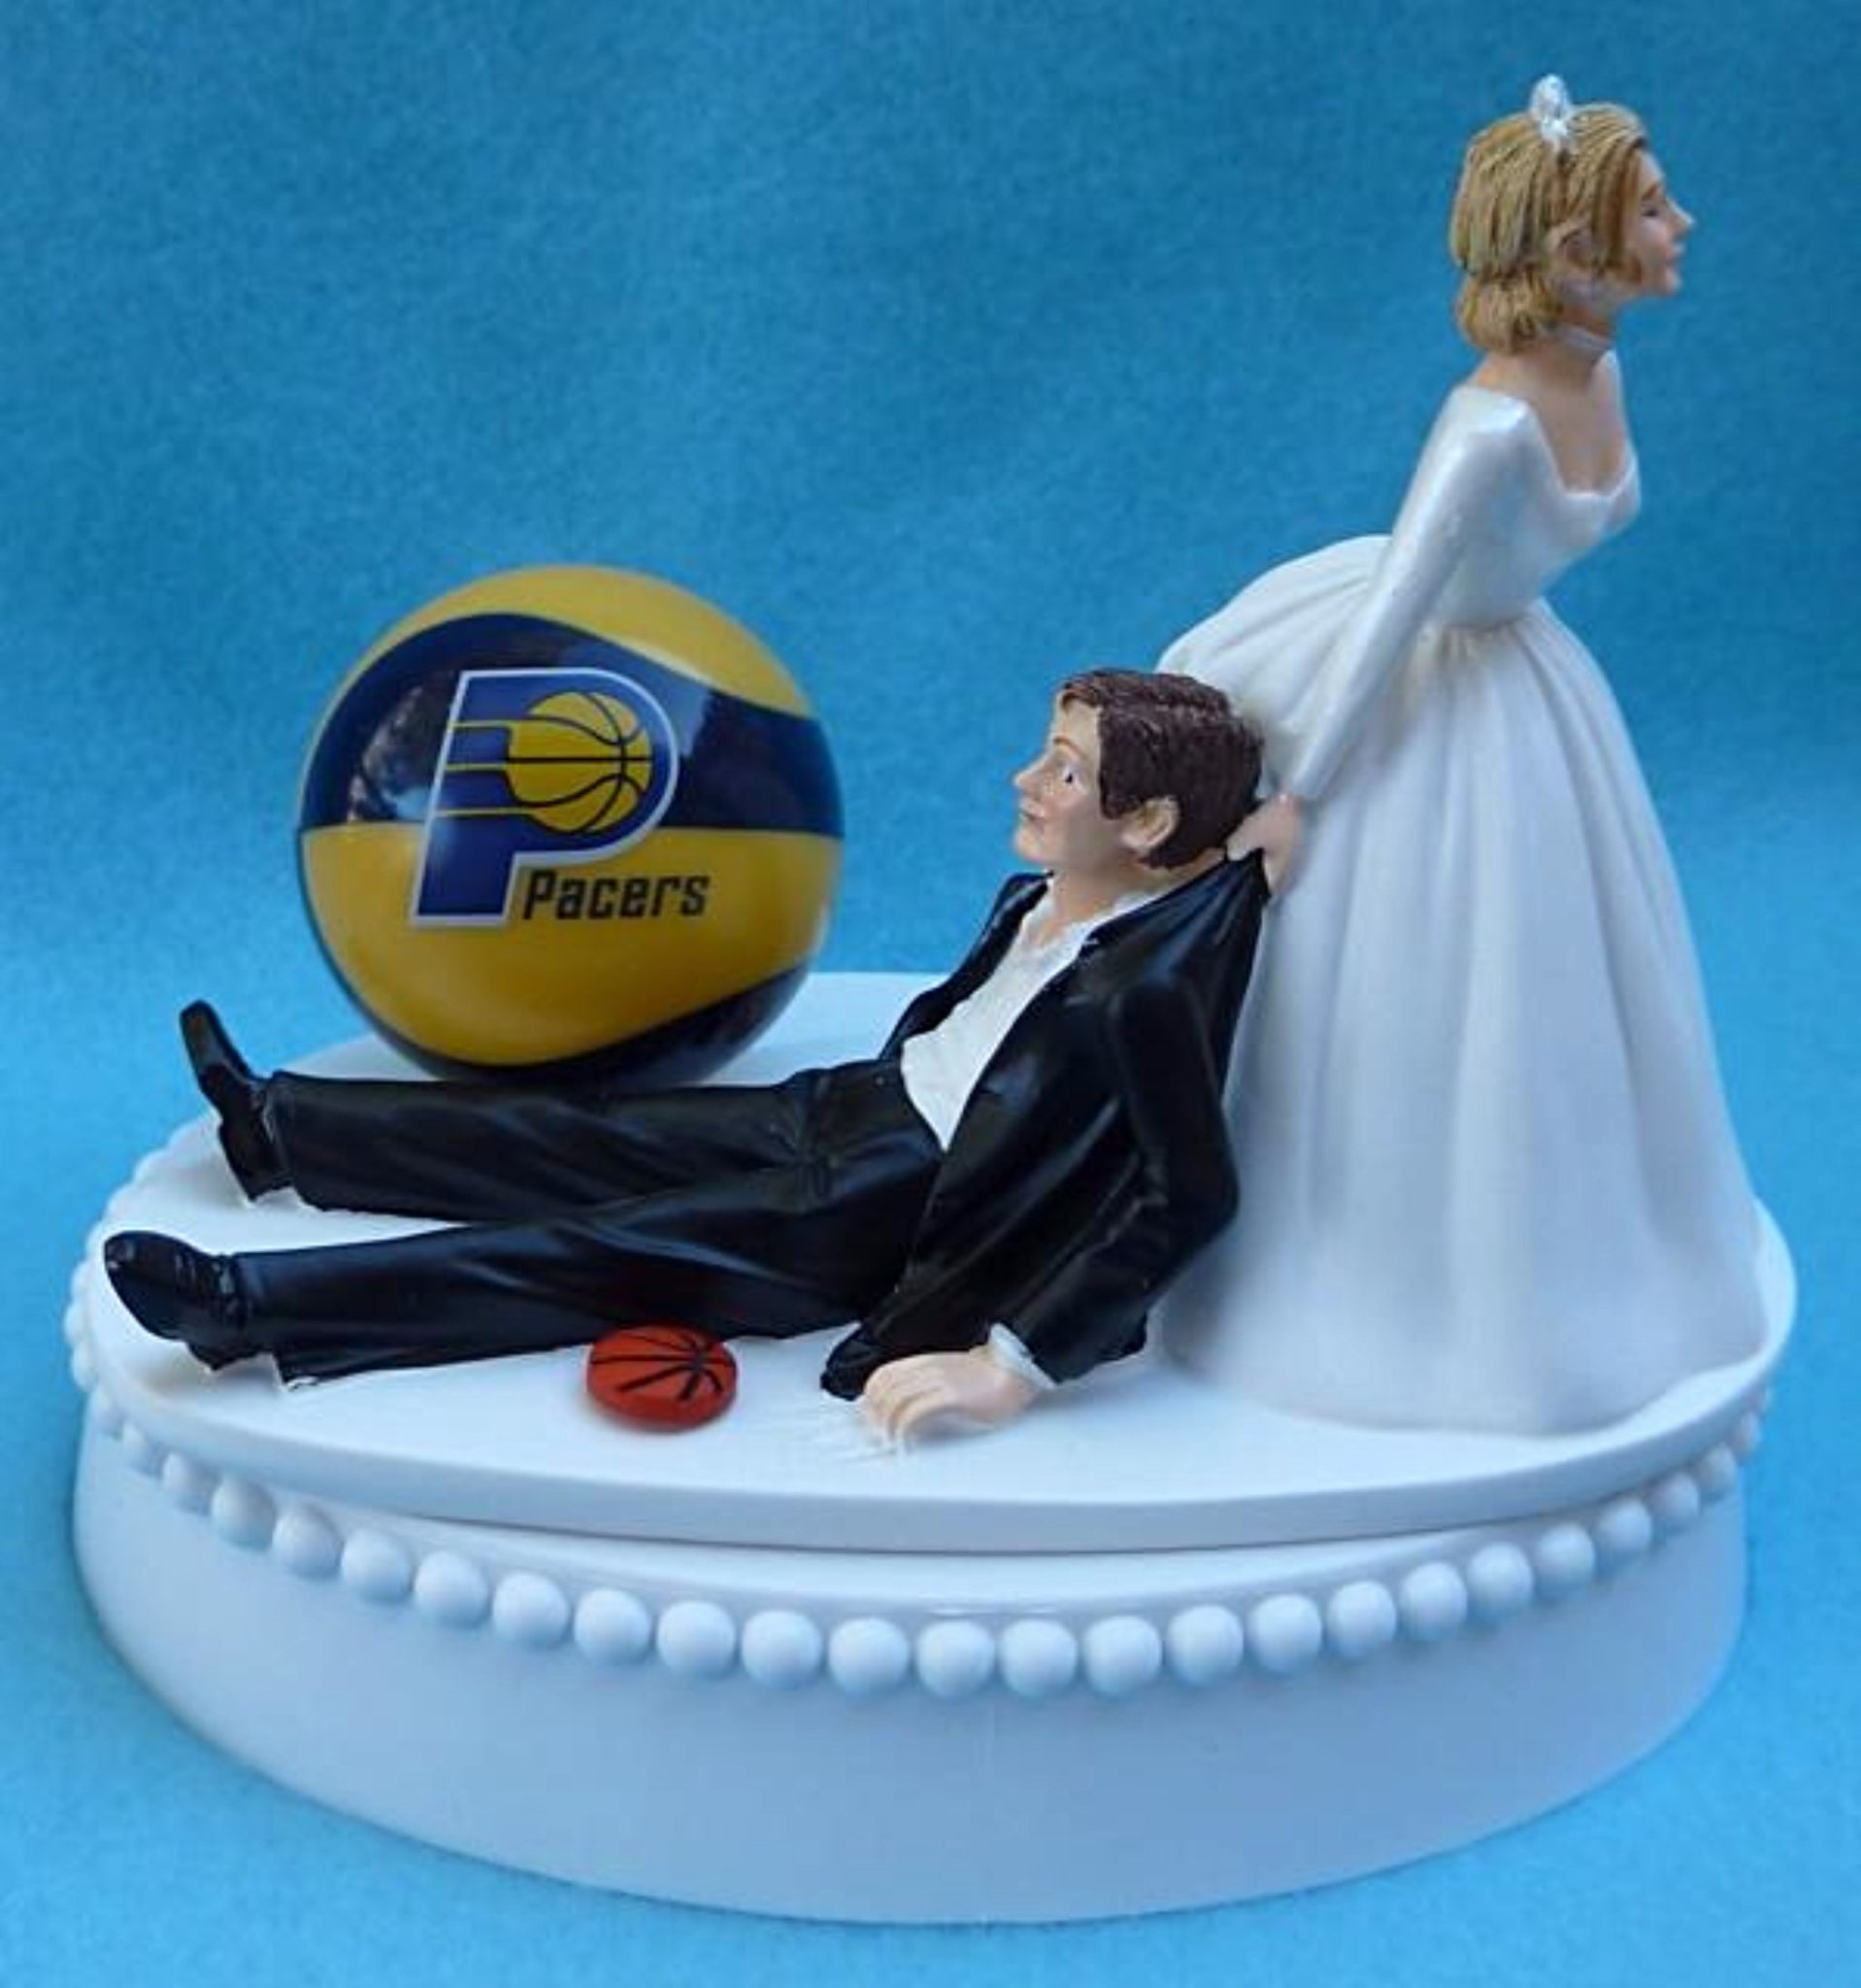 Indiana Pacers wedding cake topper groom's cake top NBA basketball sports fans fun bride groom funny humorous reception